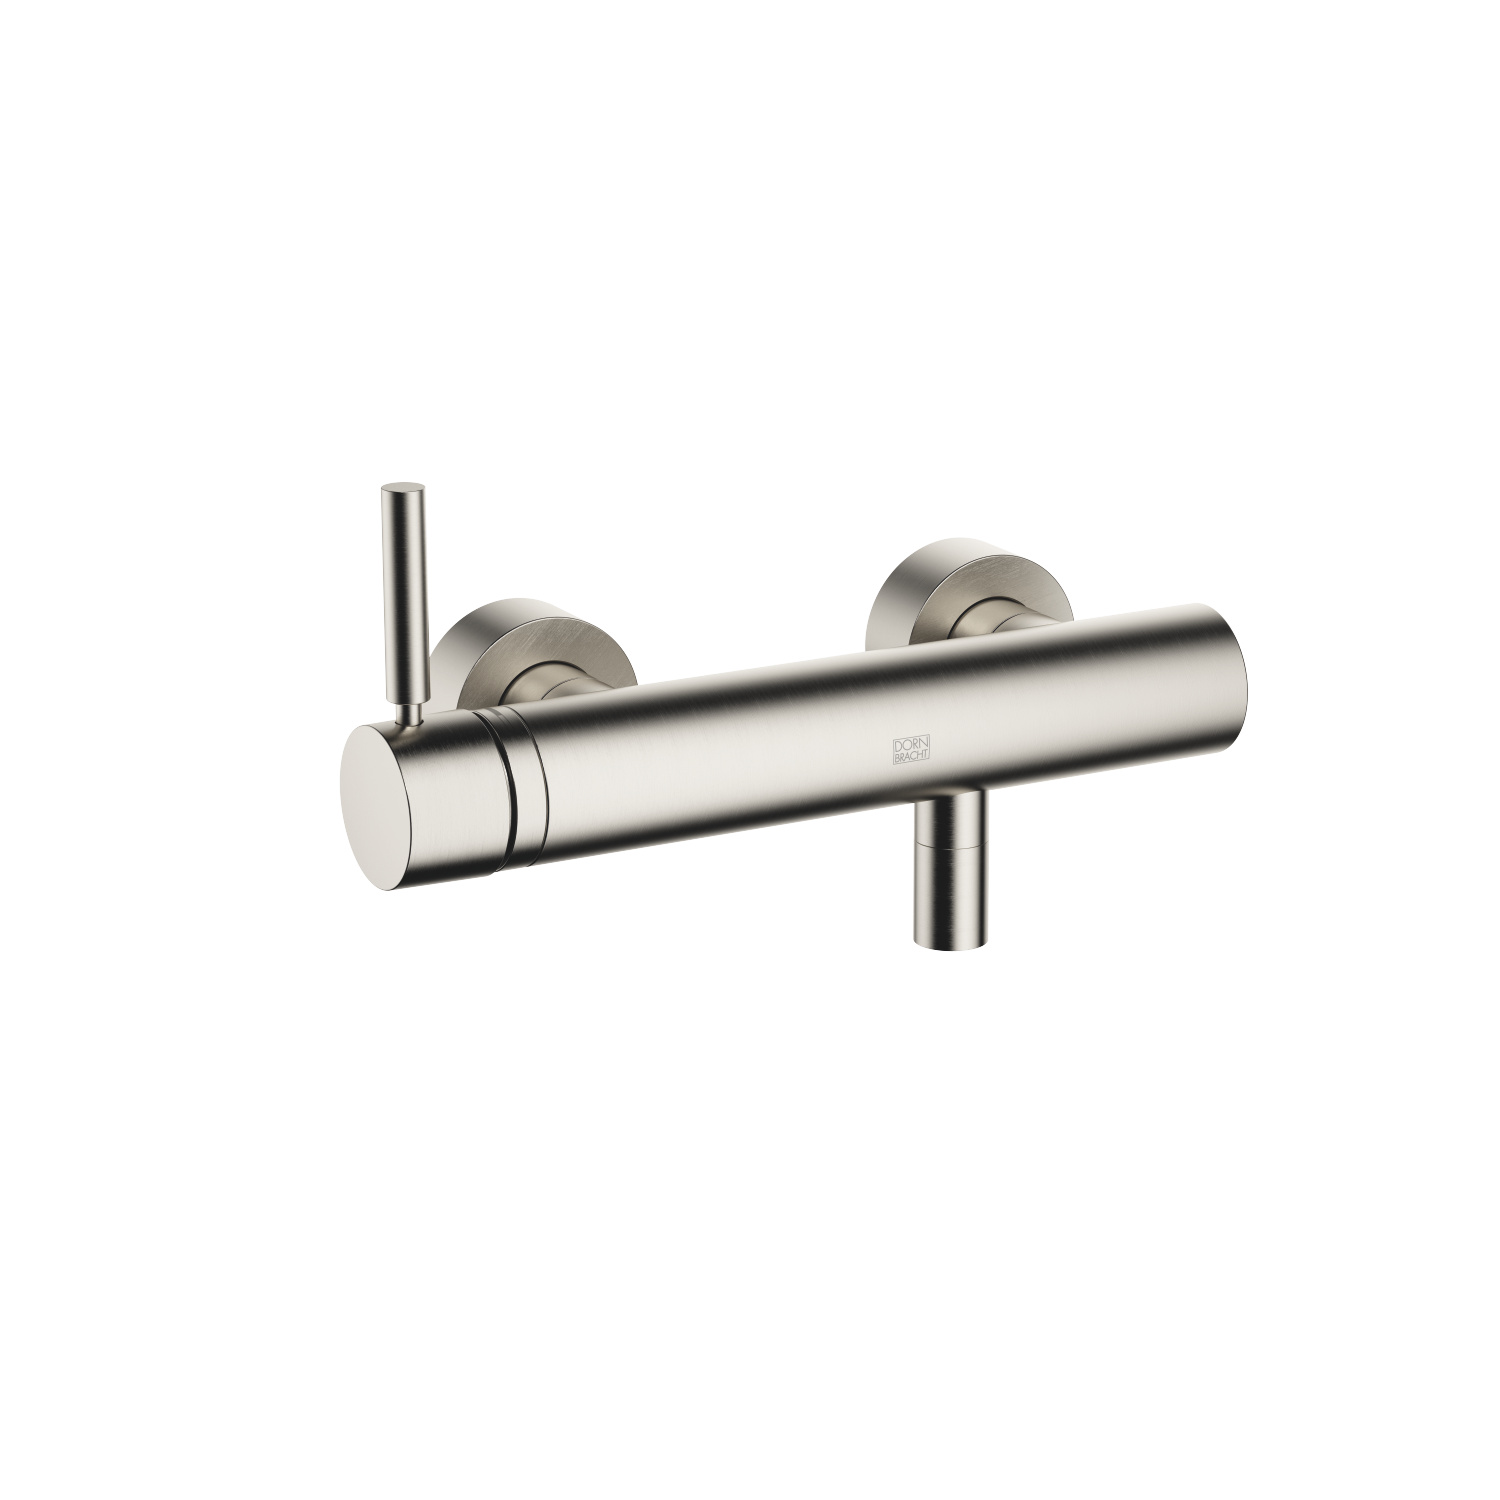 Single-lever shower mixer for wall-mounted installation - platinum matte